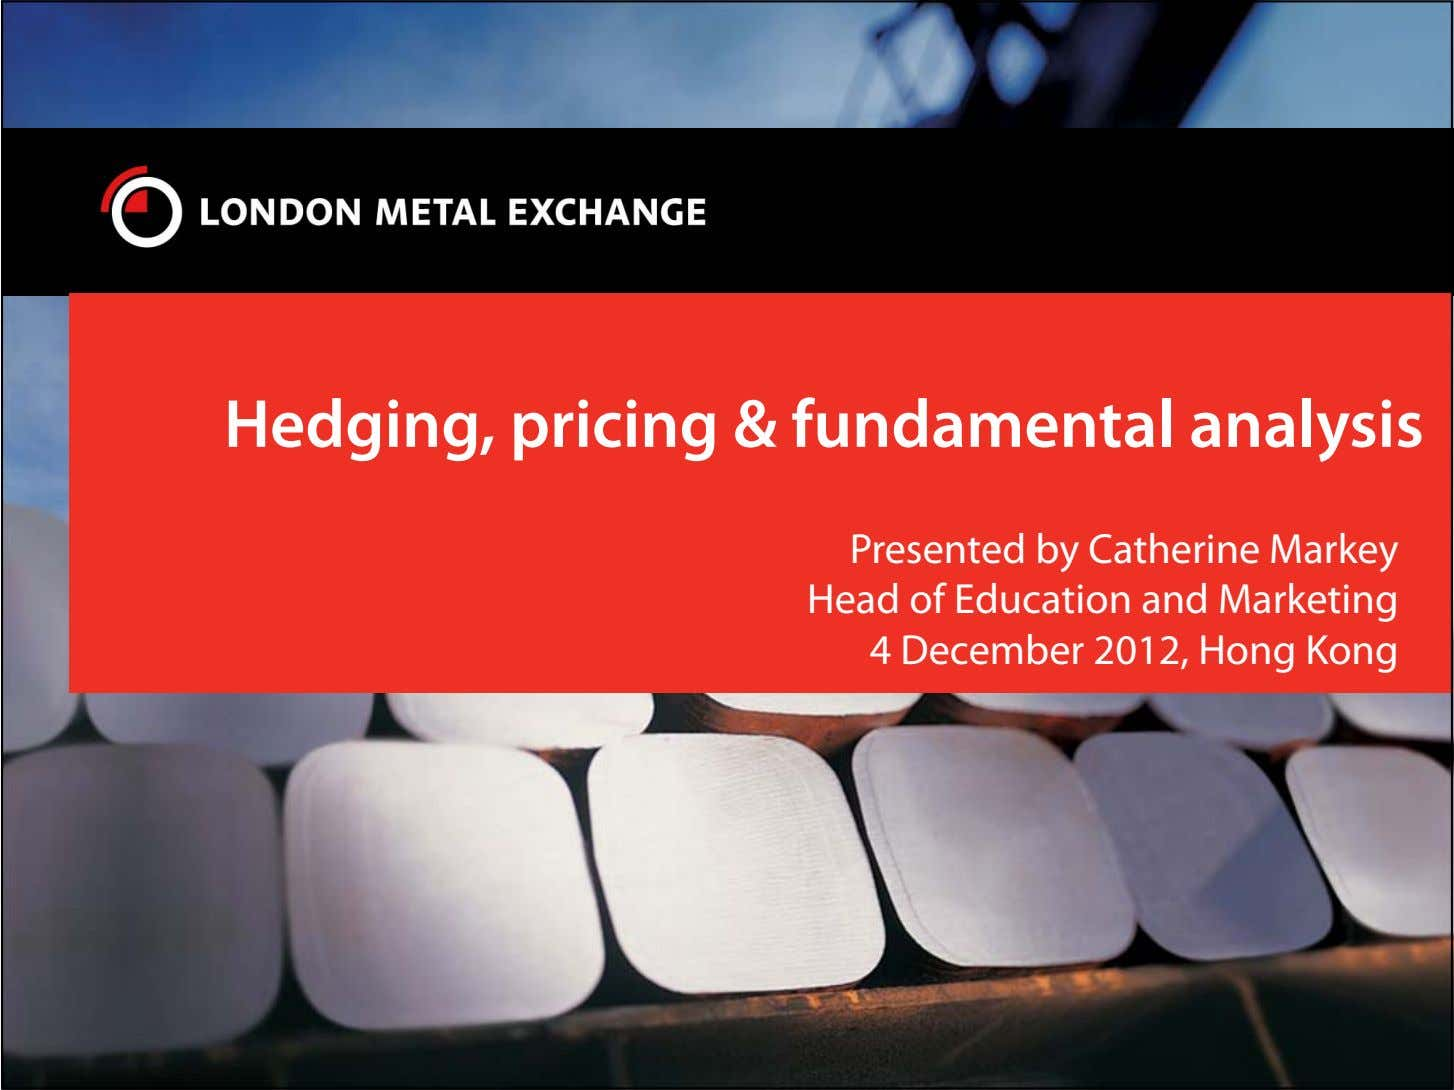 Hedging, pricing & fundamental analysis Presented by Catherine Markey Head of Education and Marketing 4